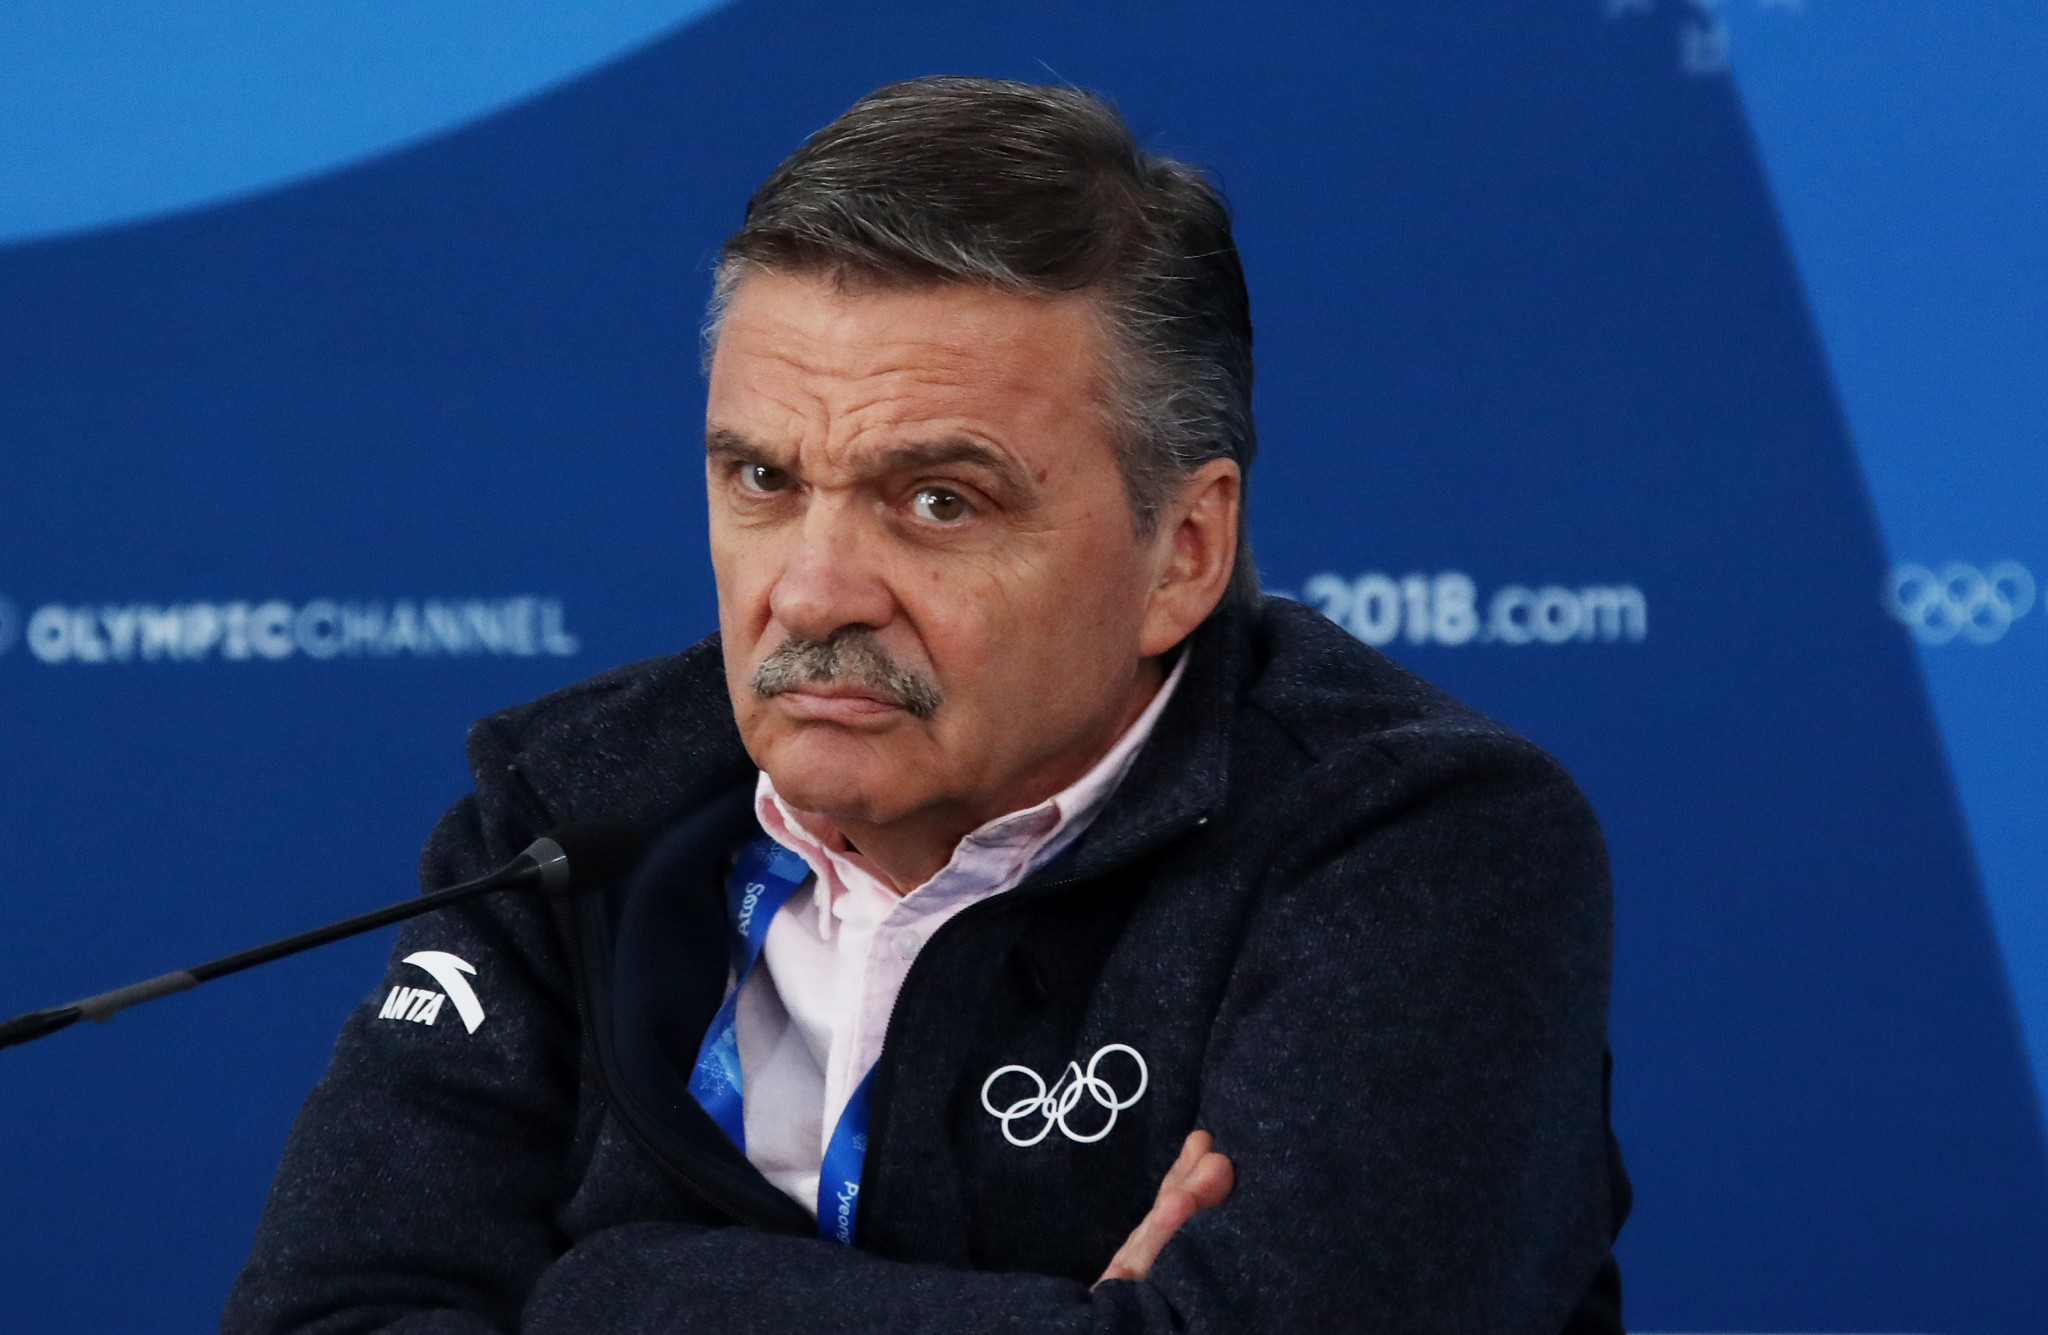 The IIHF President, currently René Fasel, will in future no longer be an employee of the organisation ©Getty Images